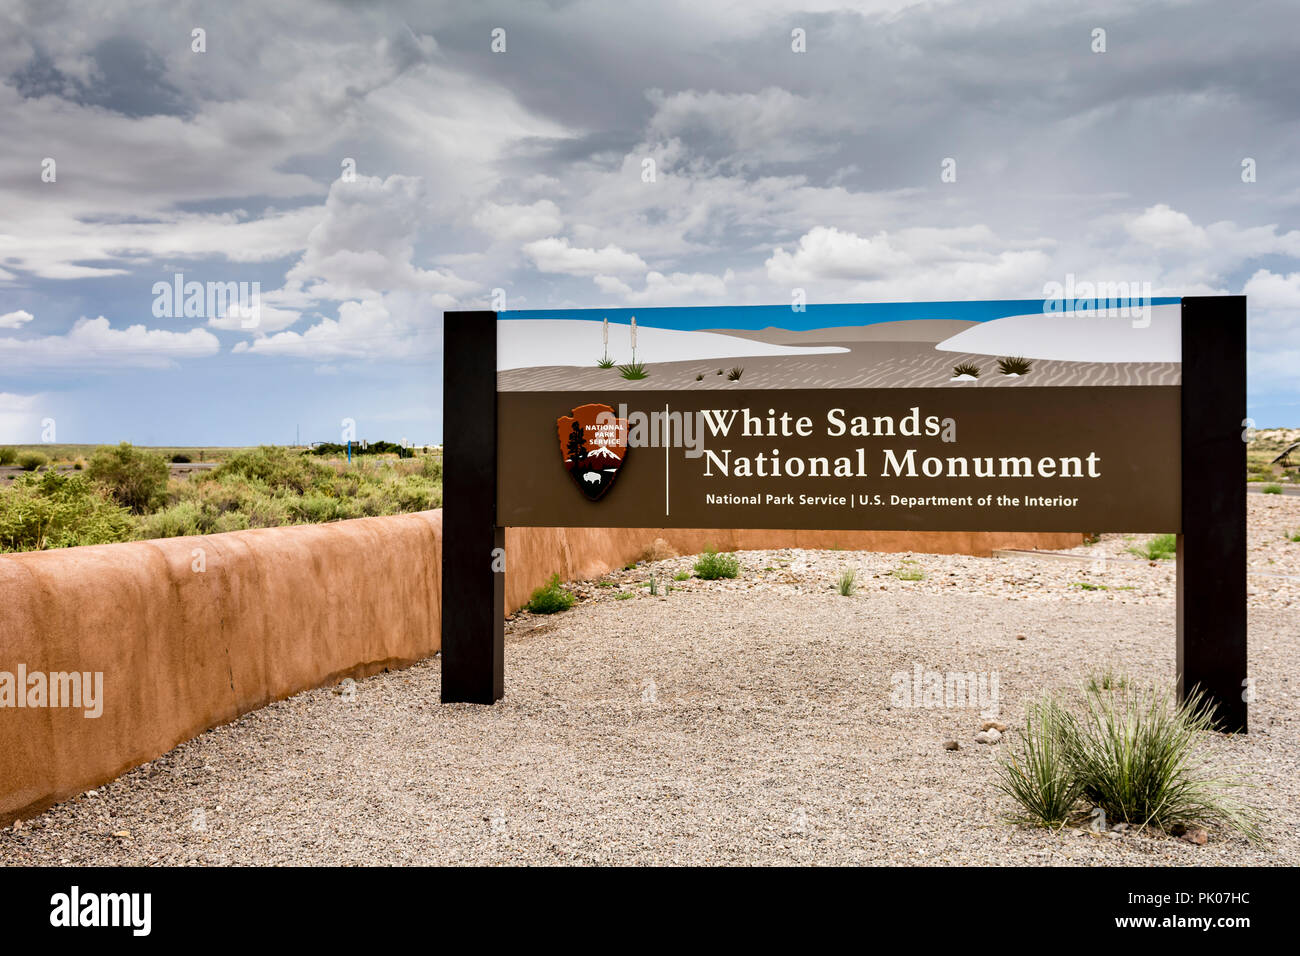 White Sands National Monument entrance sign in New Mexico USA - Stock Image